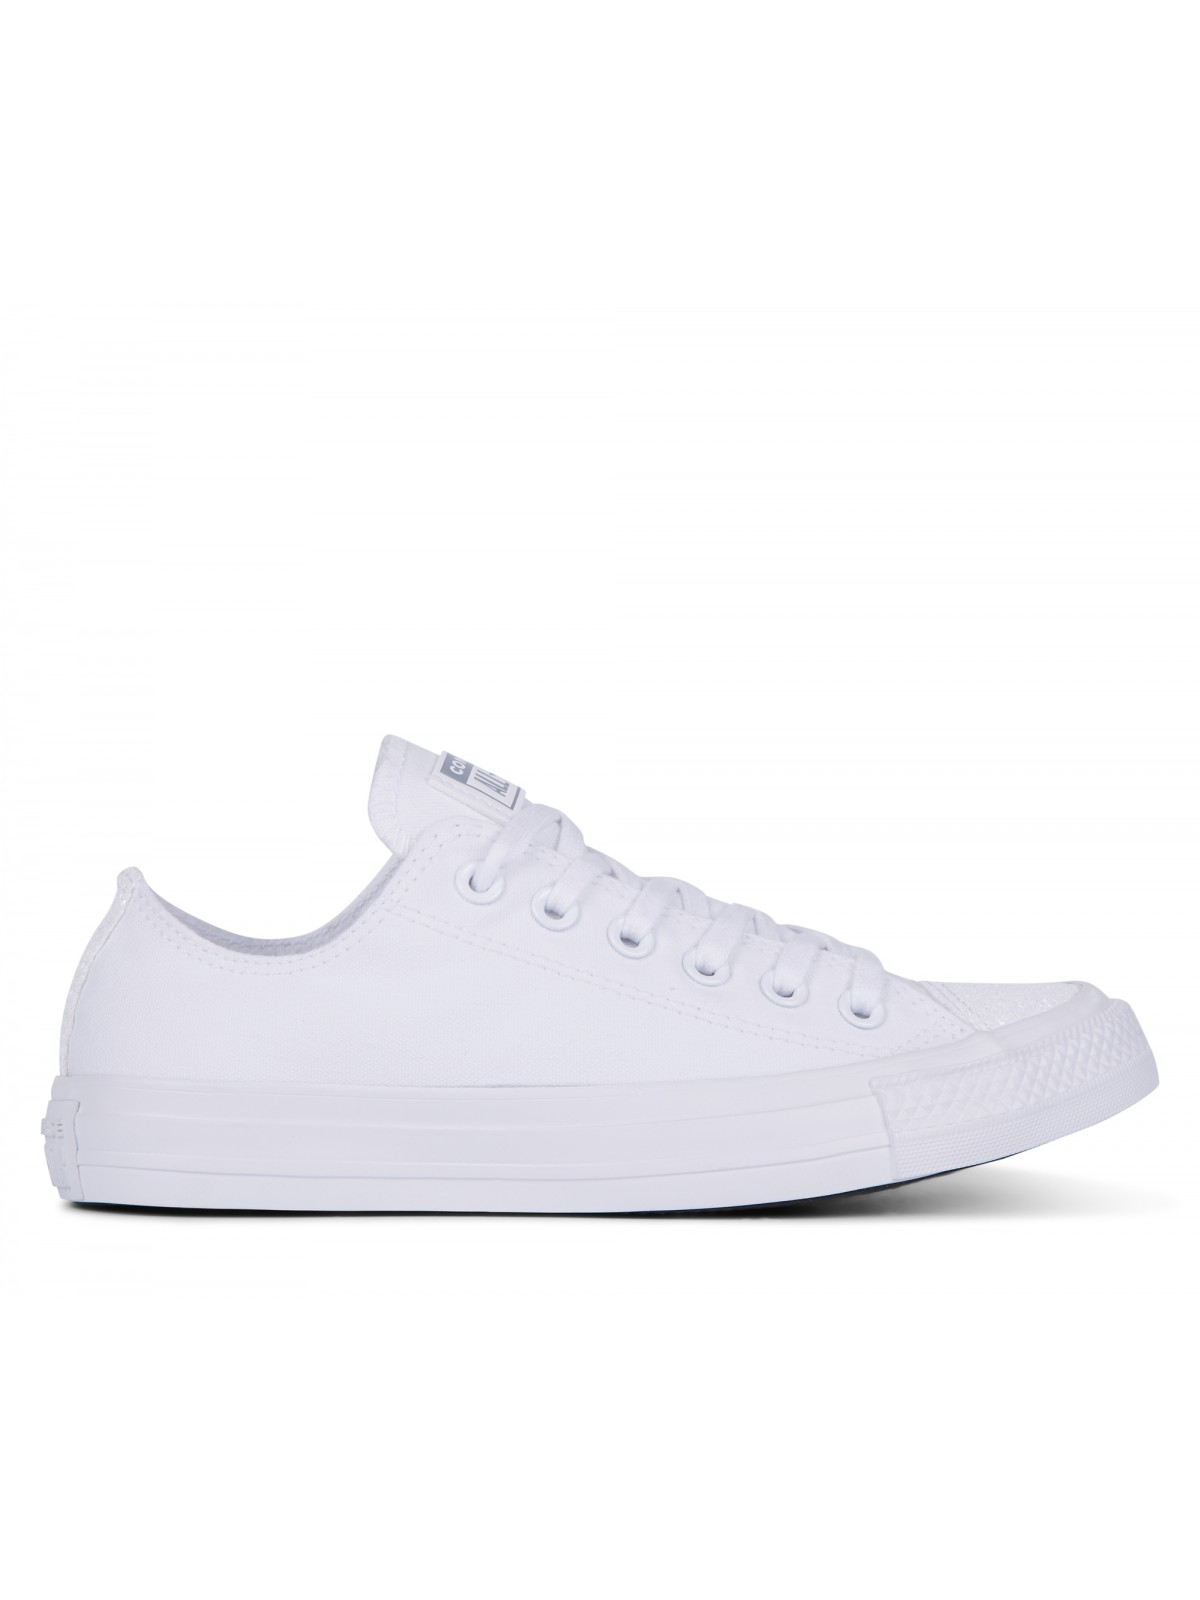 converse all star basse blanche 39